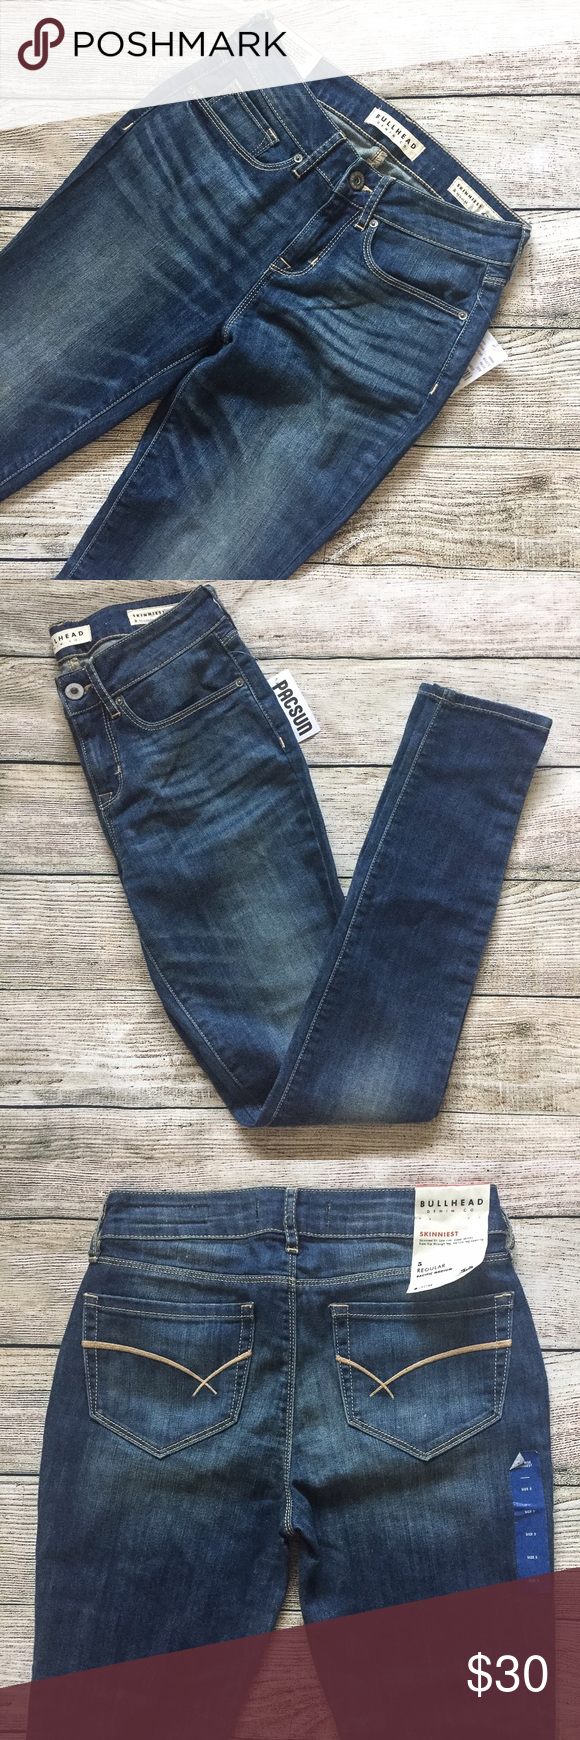 "{Bullhead} •NWT• Skinniest Jeans • Super skinny fit, slim from hip to hem • Fabric is stretchy  • New with tags  • 13.5"" waist laying flat • 30"" inseam • 9"" front rise   No trades   